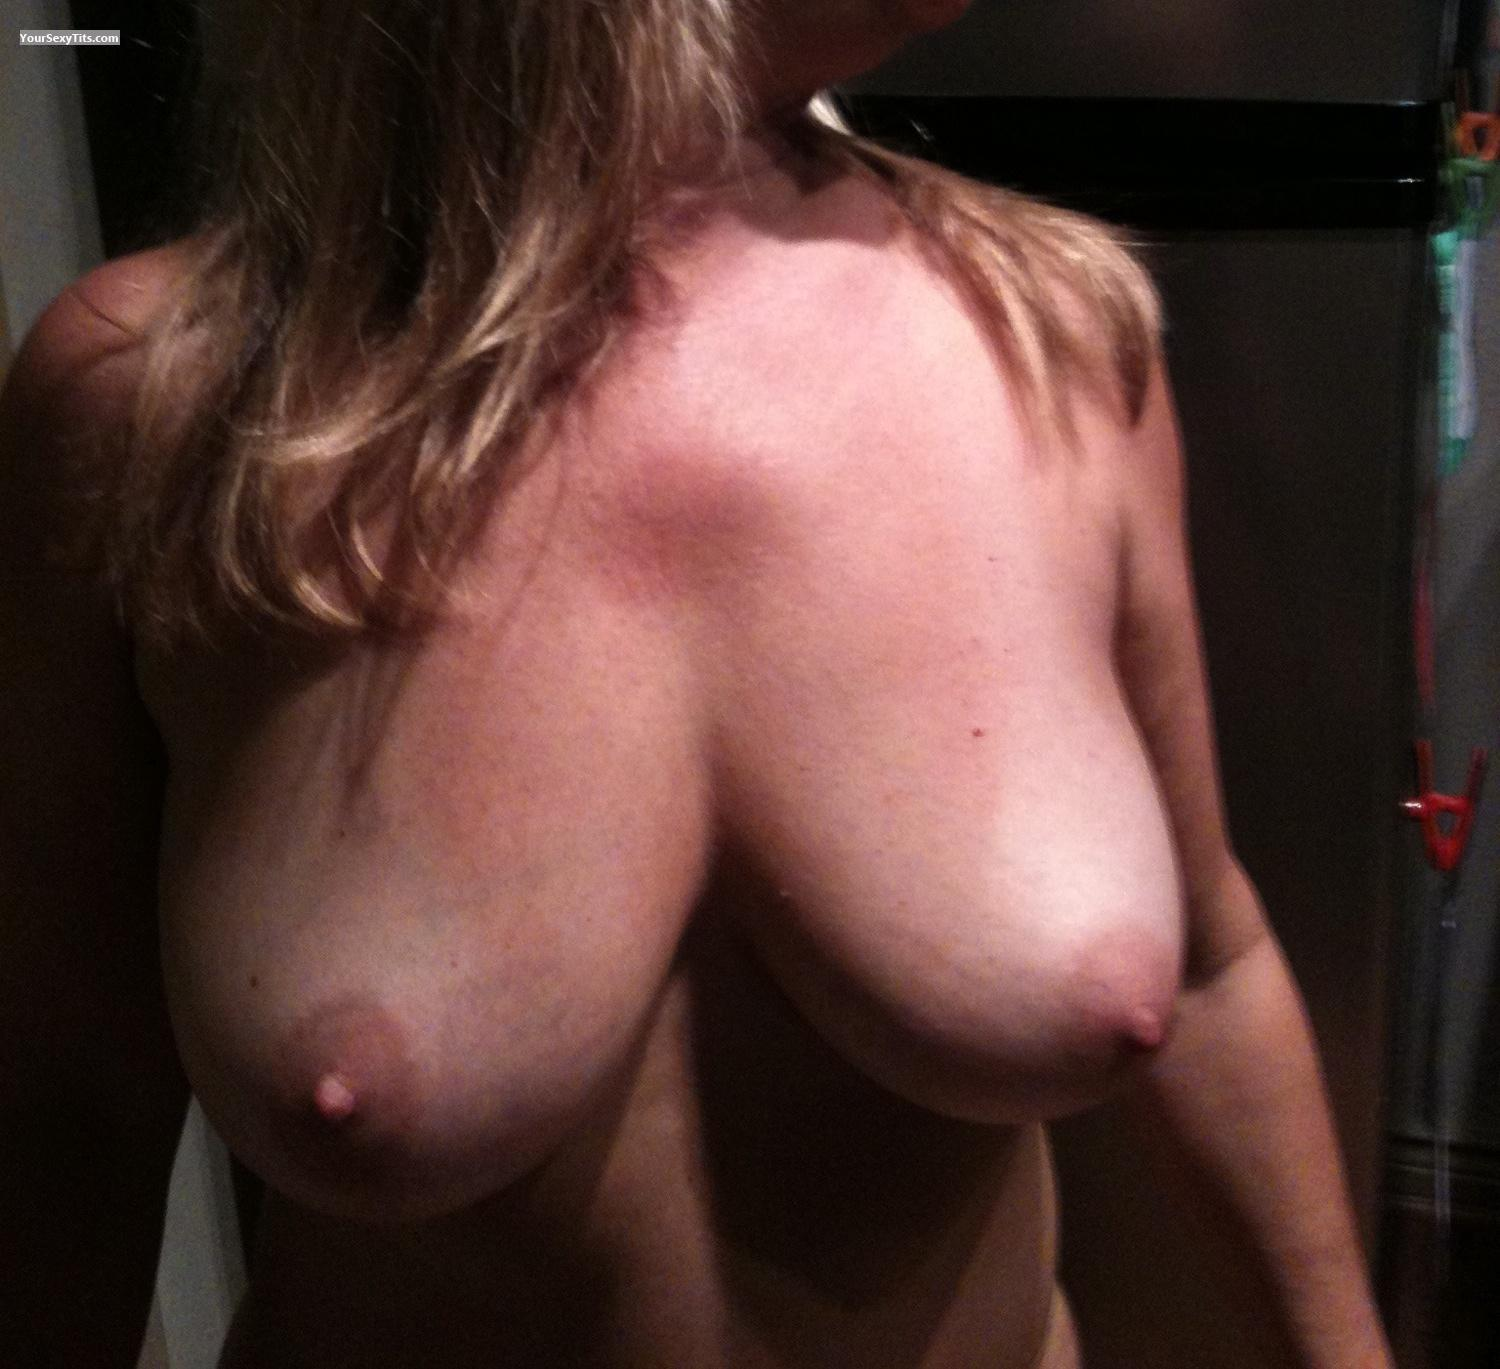 Tit Flash: Very Big Tits By IPhone - Natual50 from United States